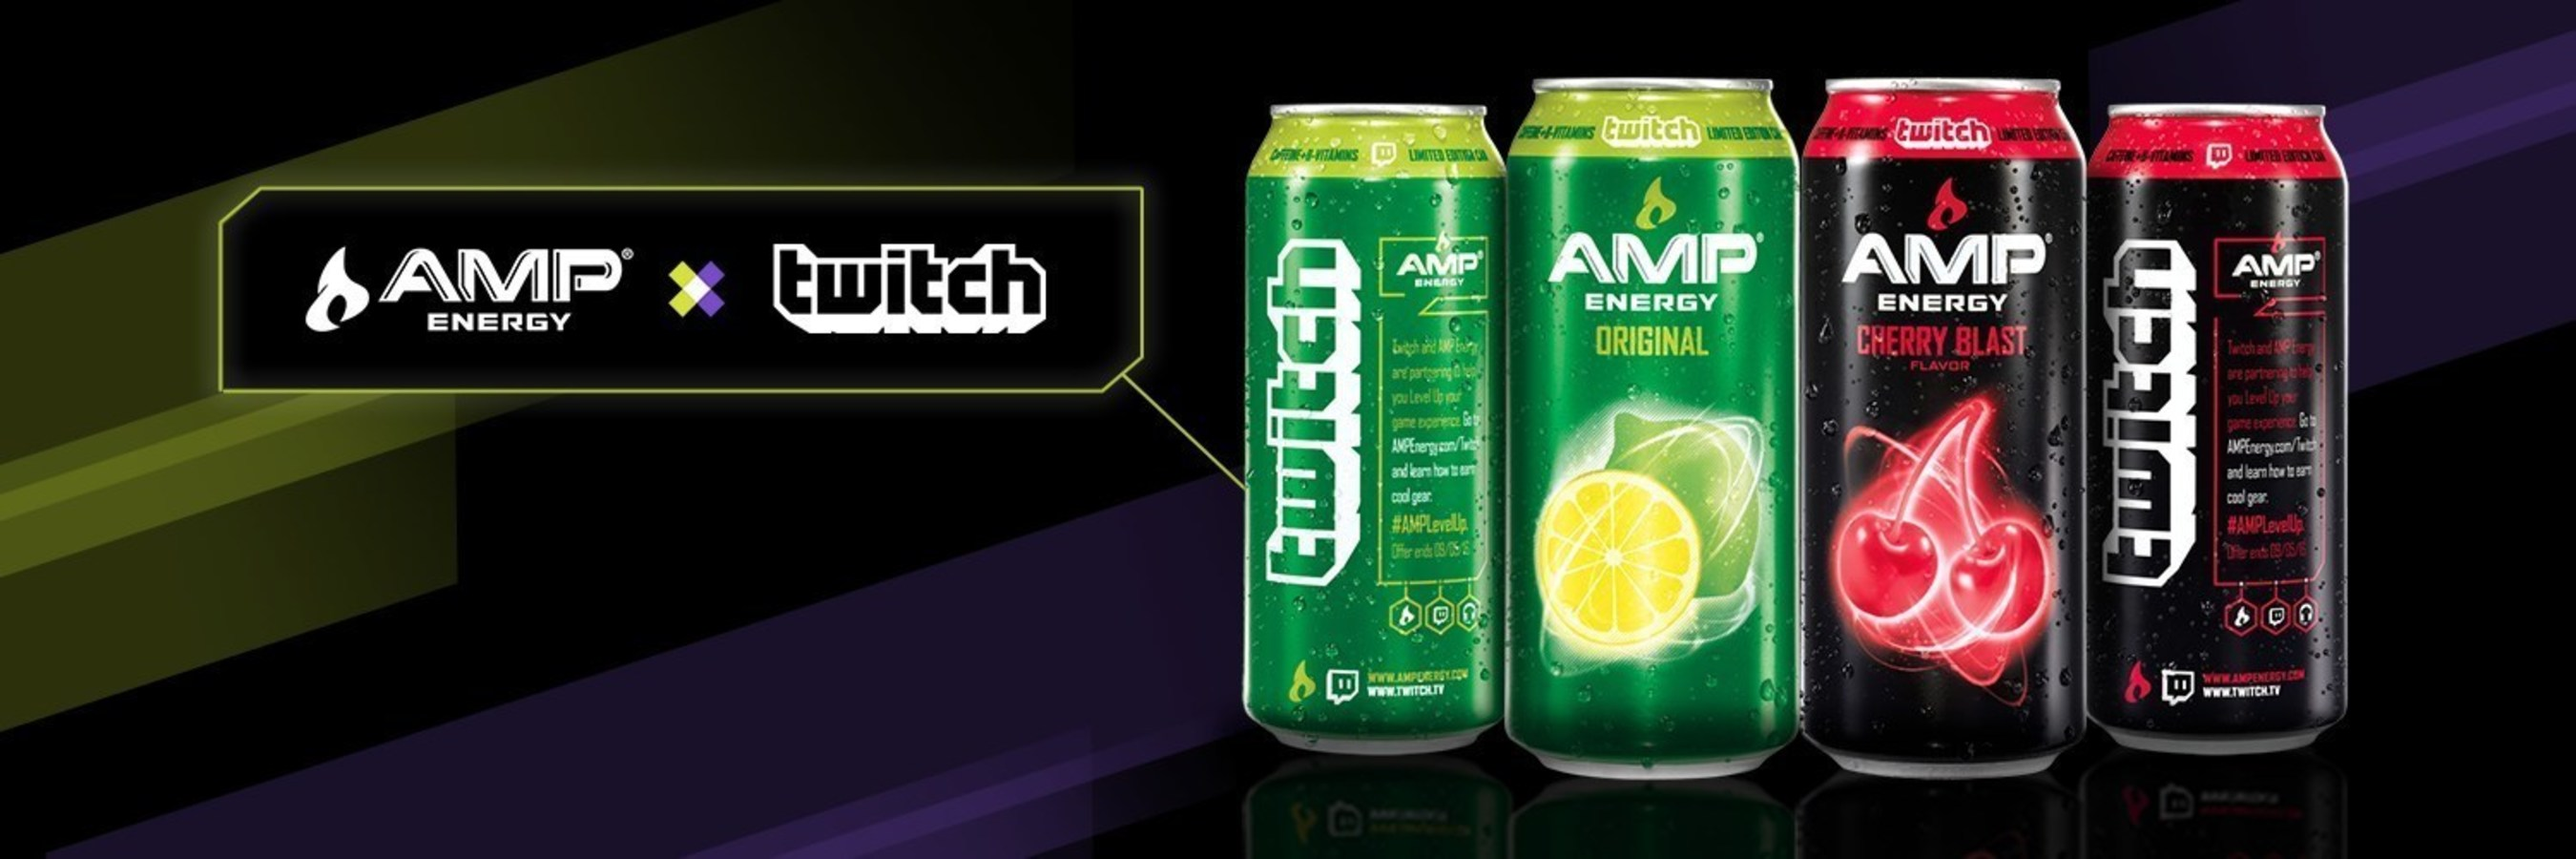 AMP Energy and Twitch launch an exclusive partnership, featuring limited-edition AMP Energy + Twitch co-branded cans and a national sweepstakes for a chance to win a trip to TwitchCon and exclusive gear.